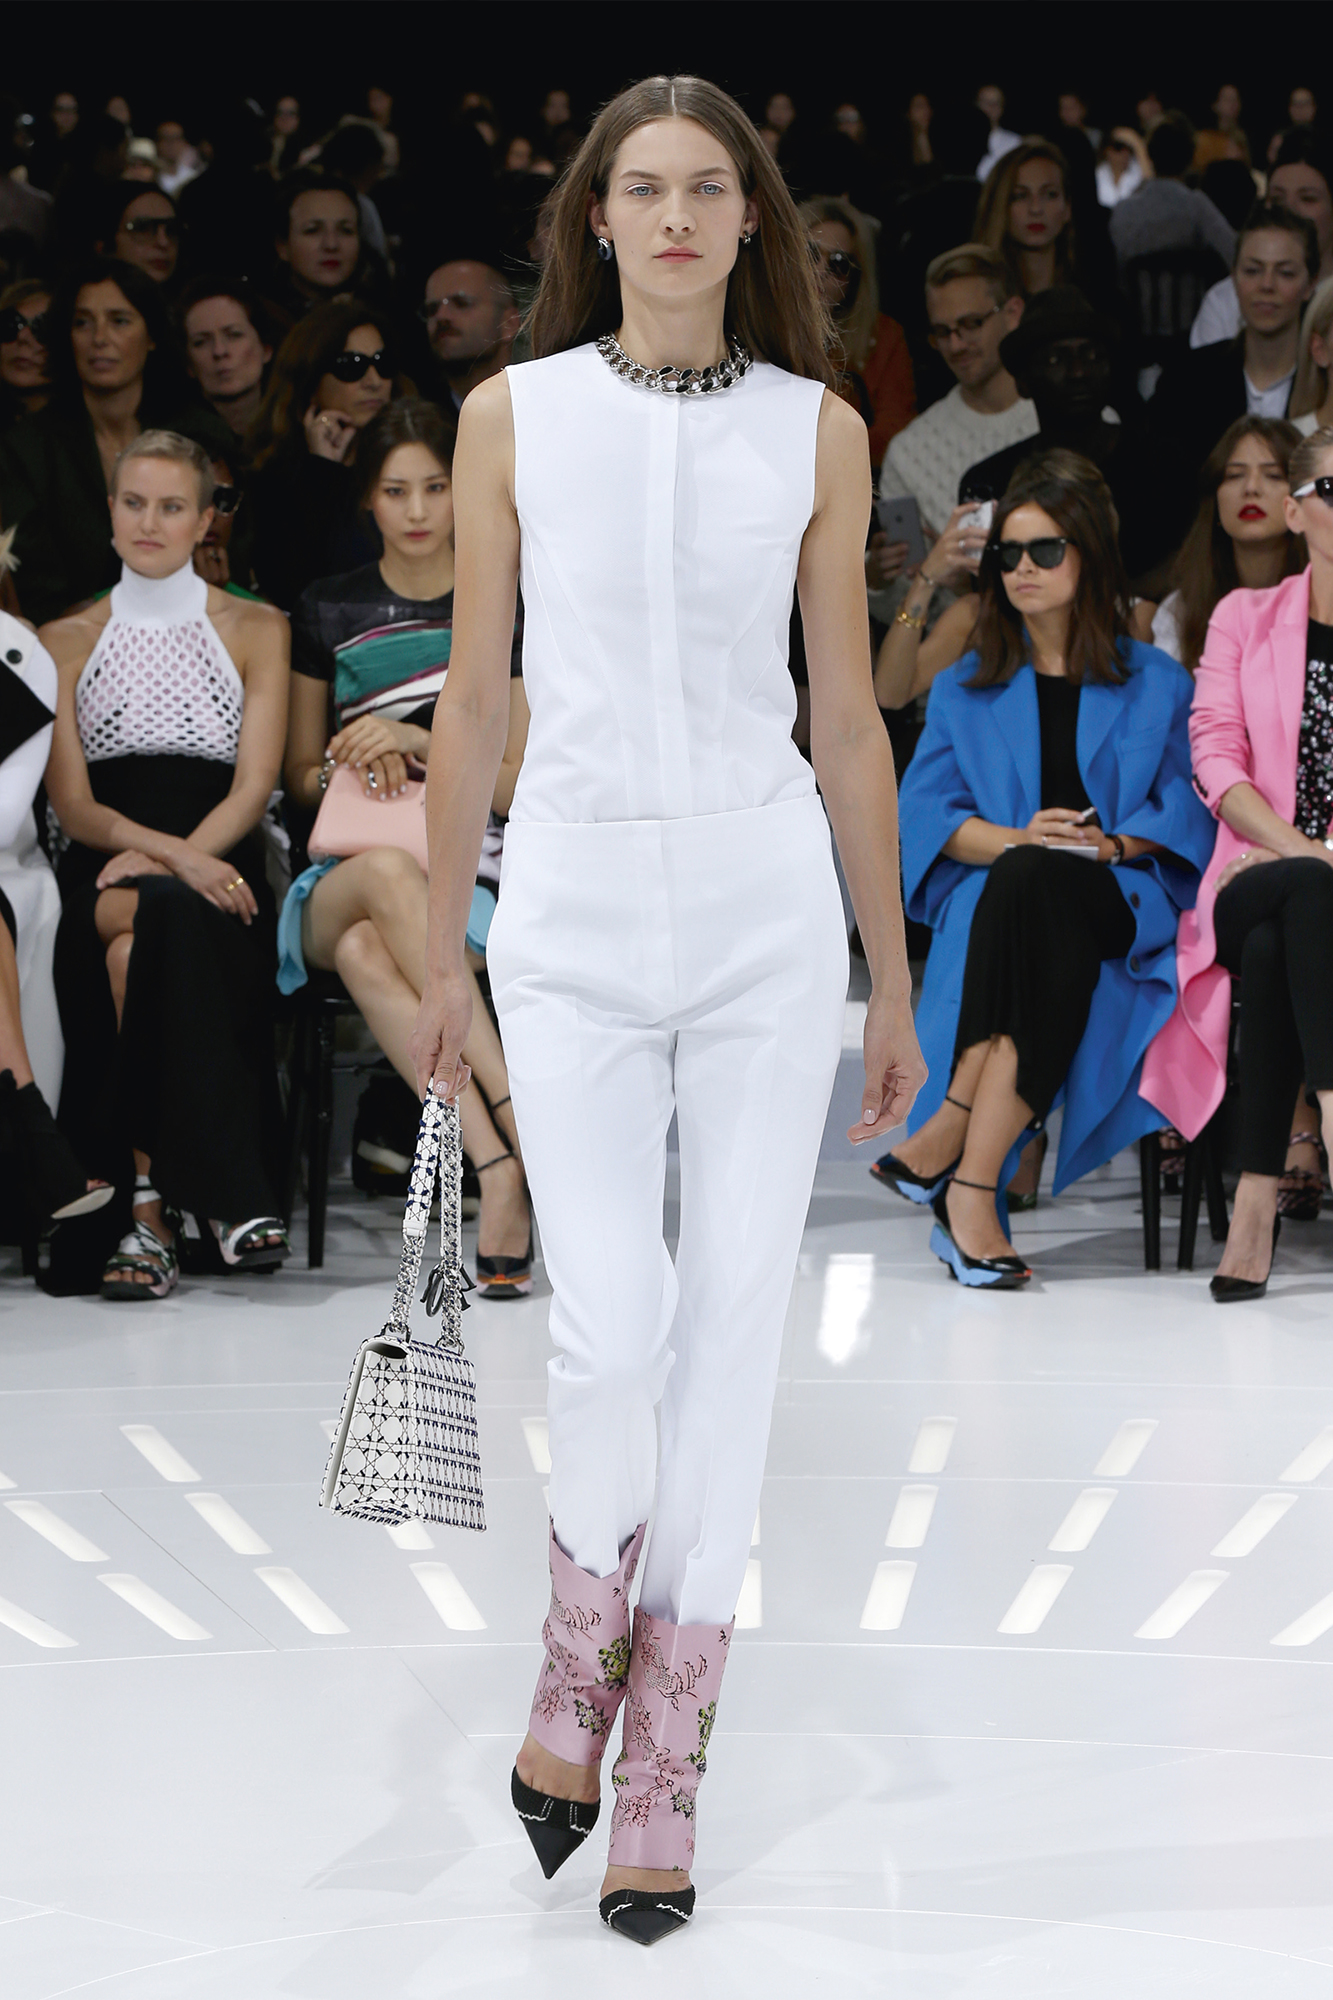 New Western Fashion Christian Dior Ready To Wear Dresses Spring Summer Collection 2015 (4)